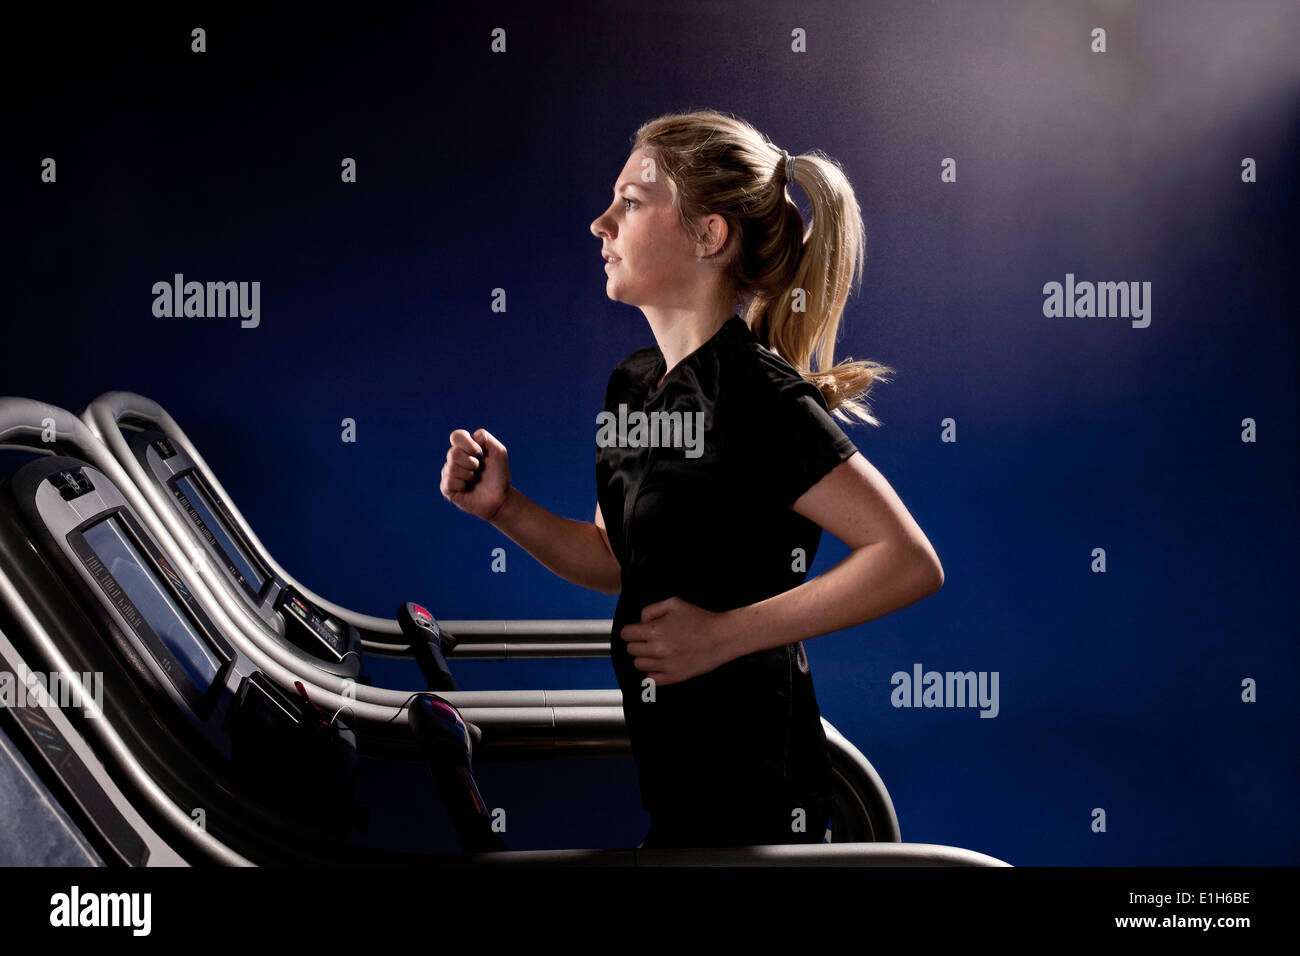 Young woman running on treadmill at gym in altitude centre - Stock Image